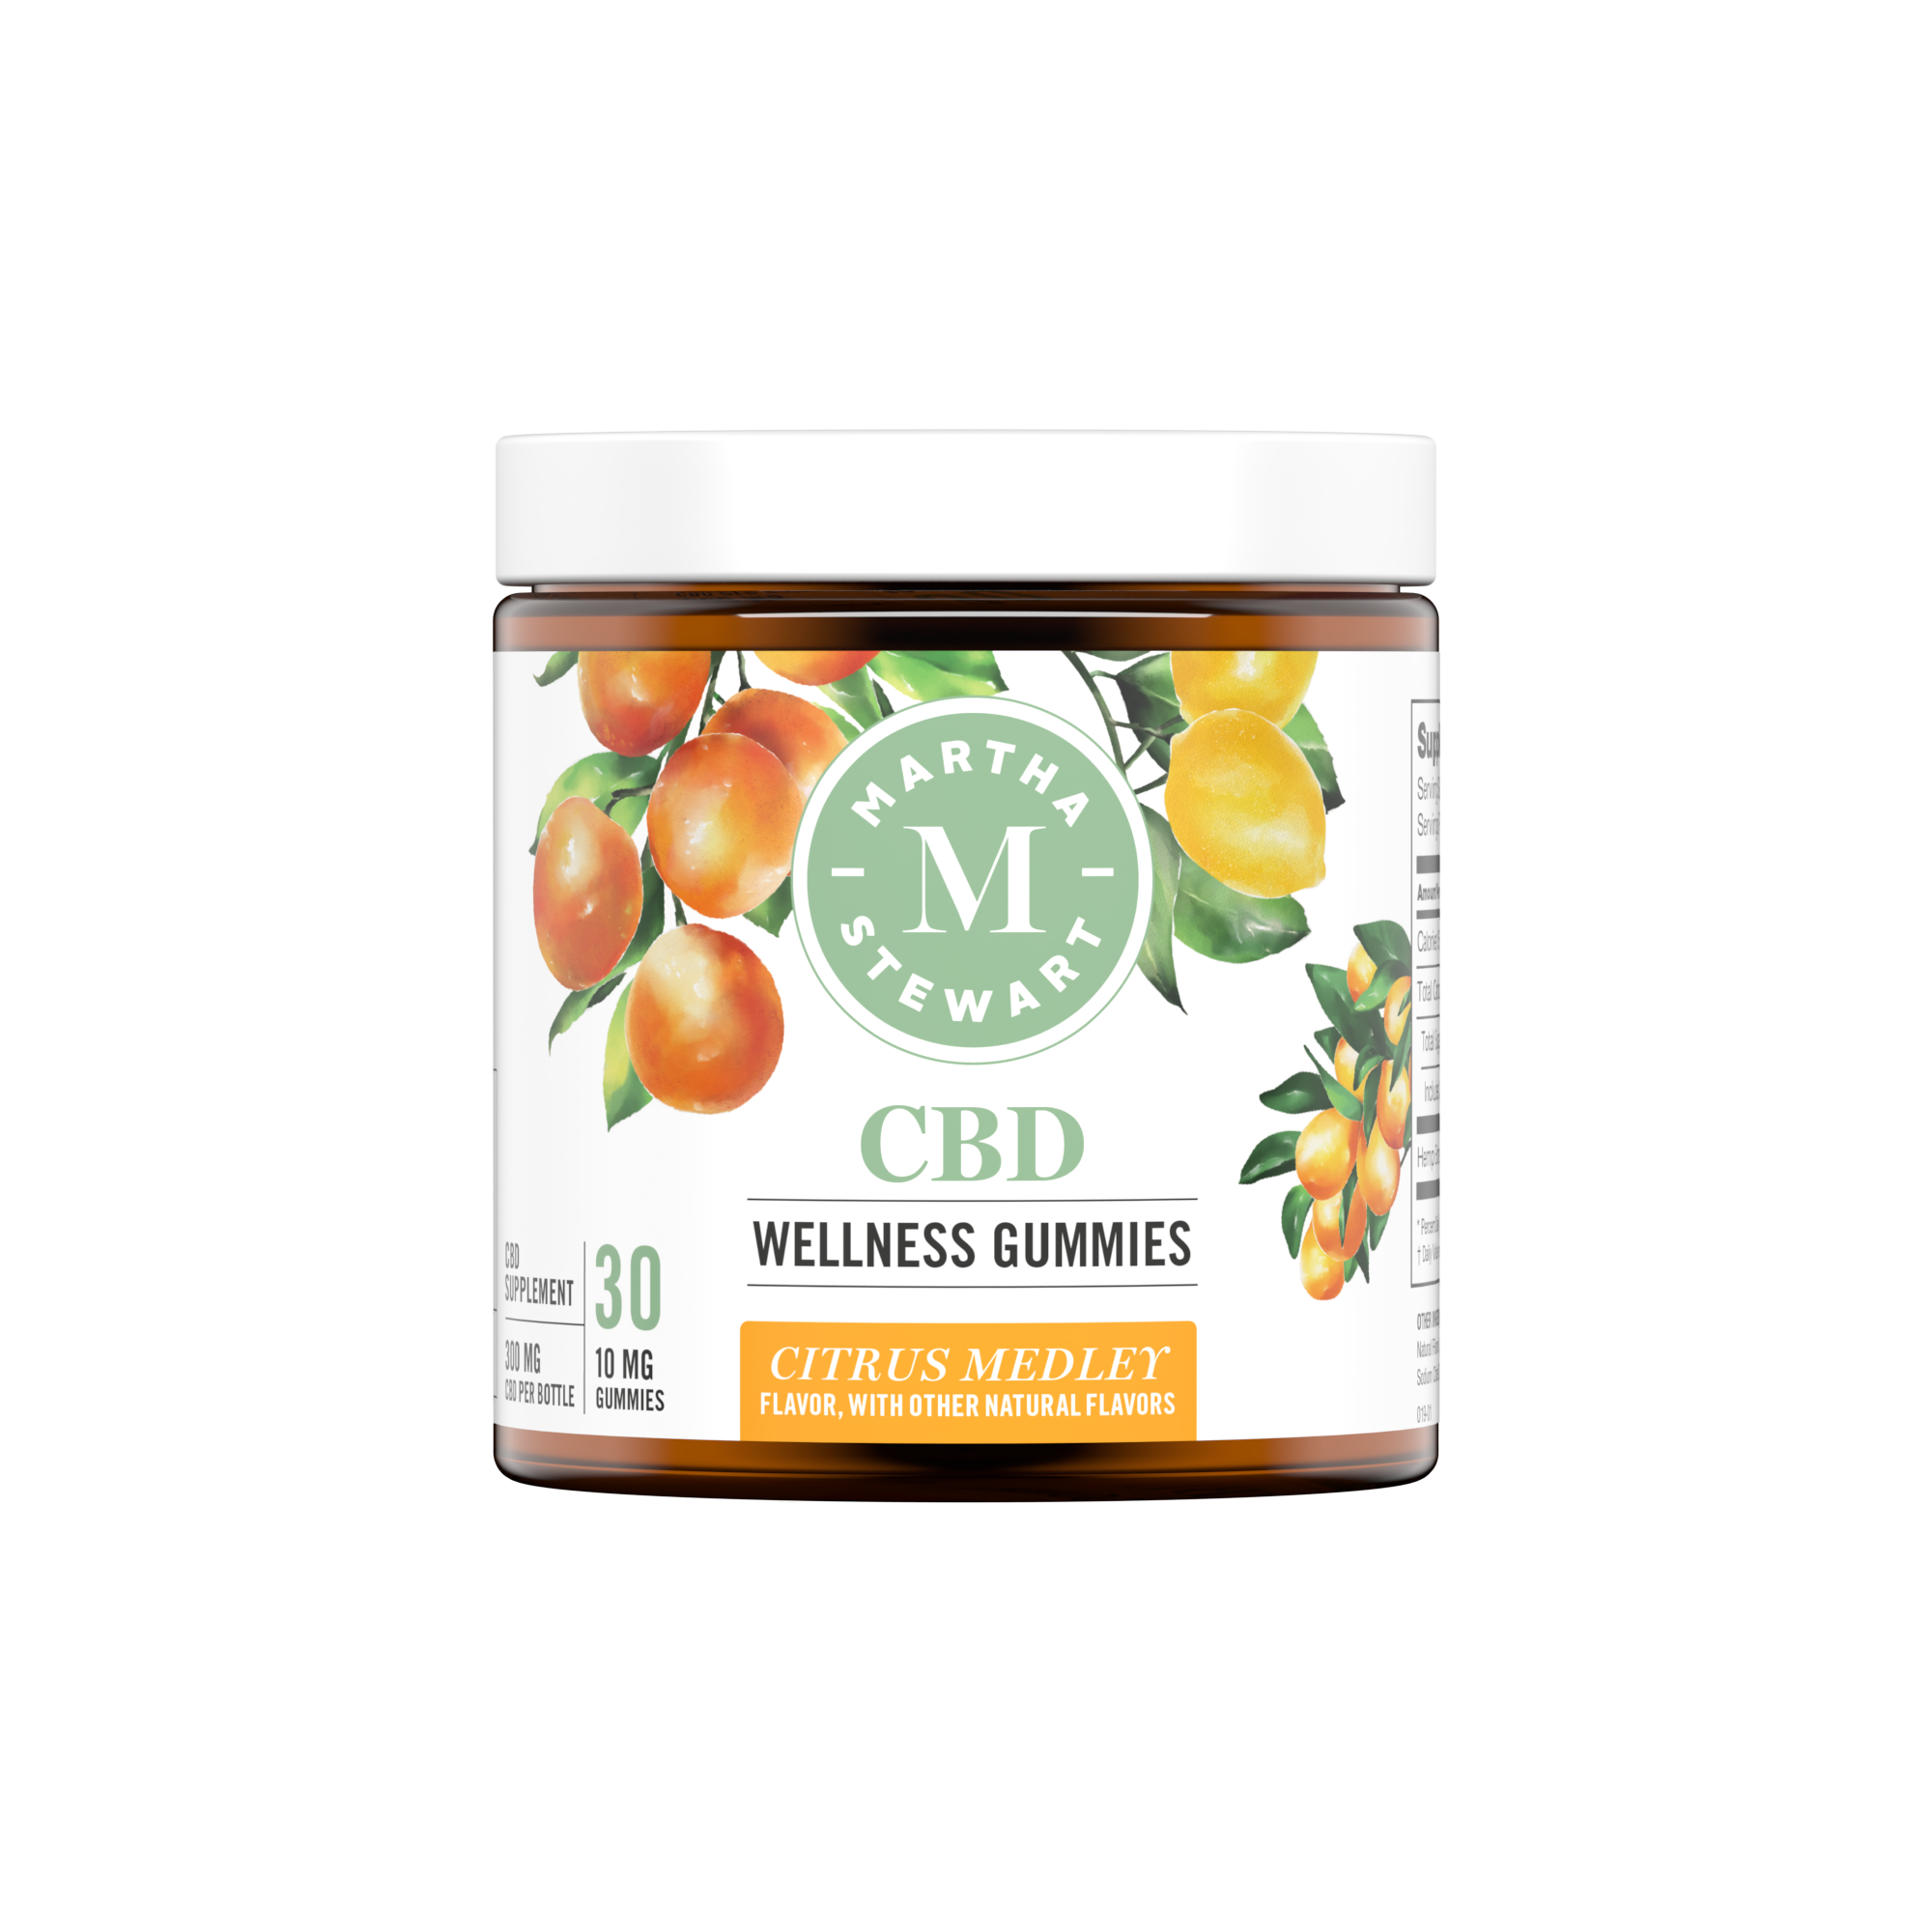 Martha Stewart CBD Wellness Citrus Medley Gummies